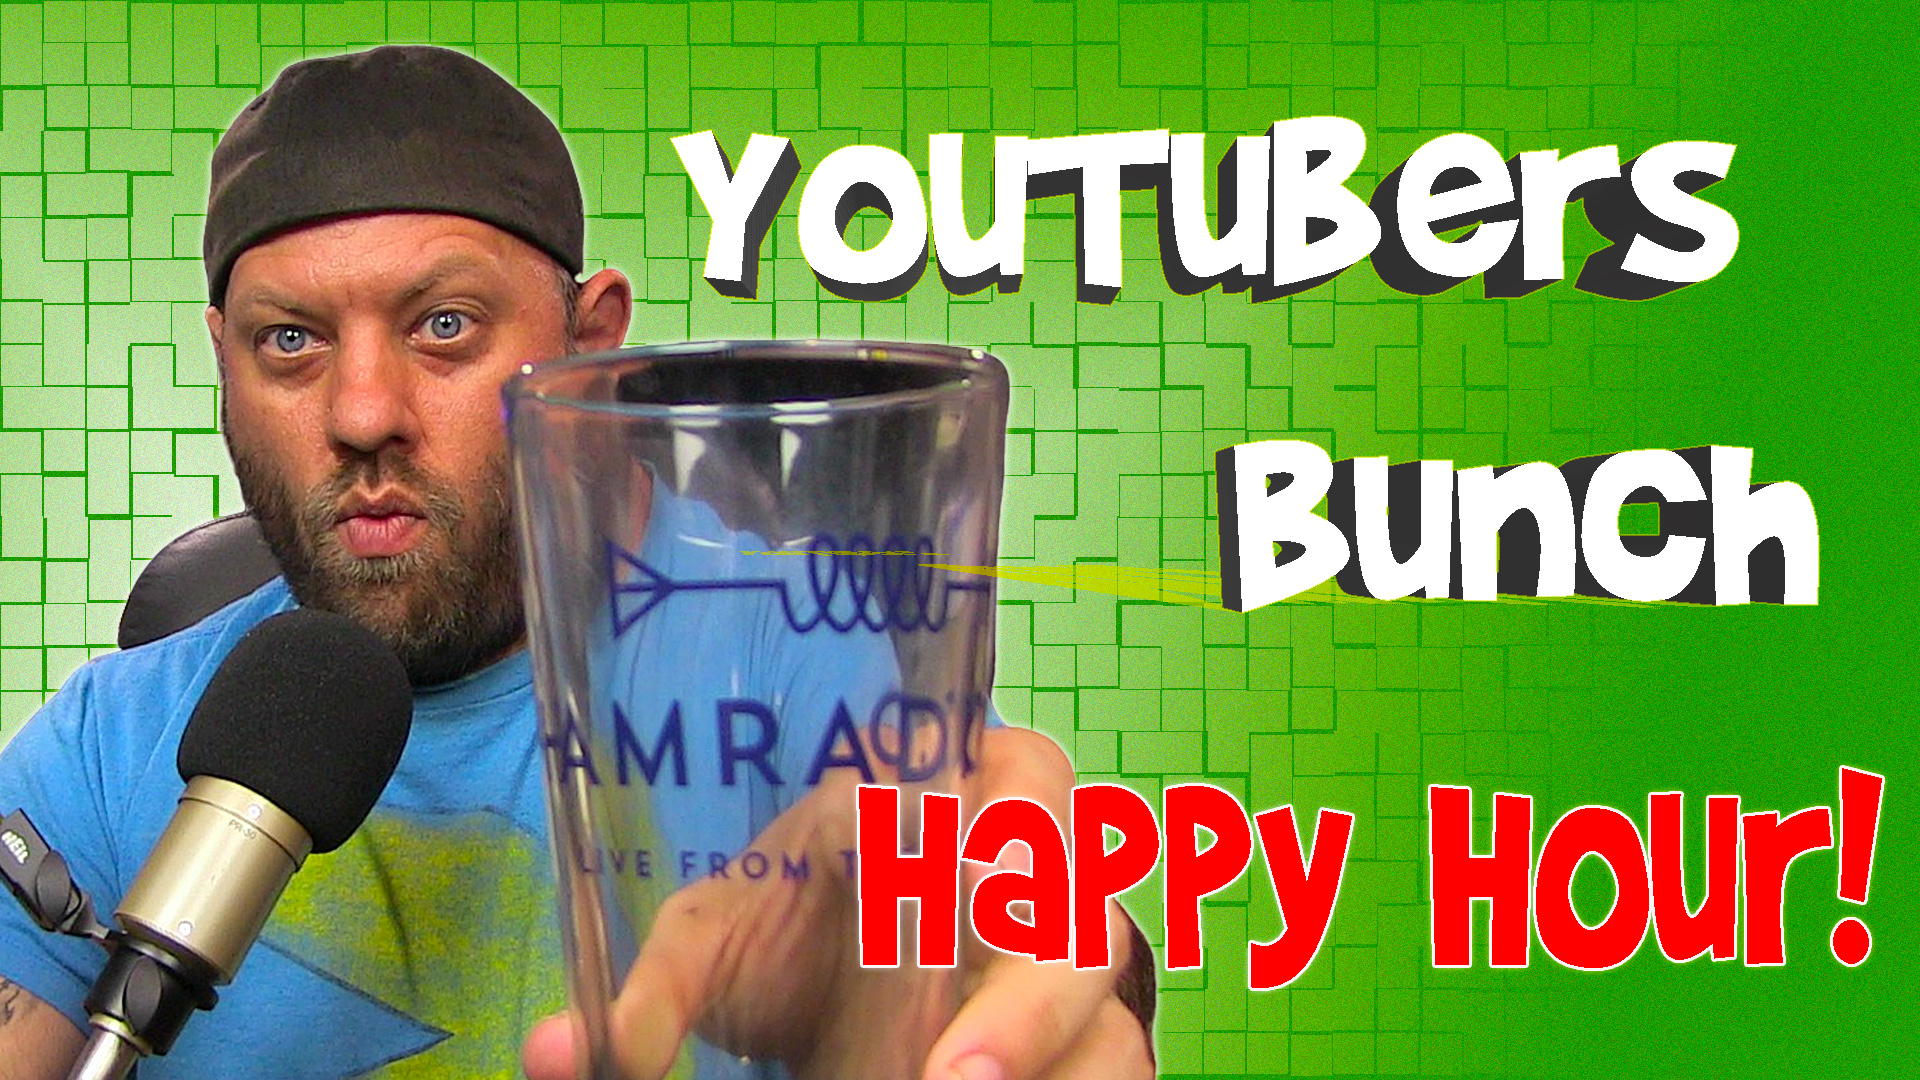 Episode 470: Ham Radio Happy Hour! – Come Join us for a Ragchew and Hangout!